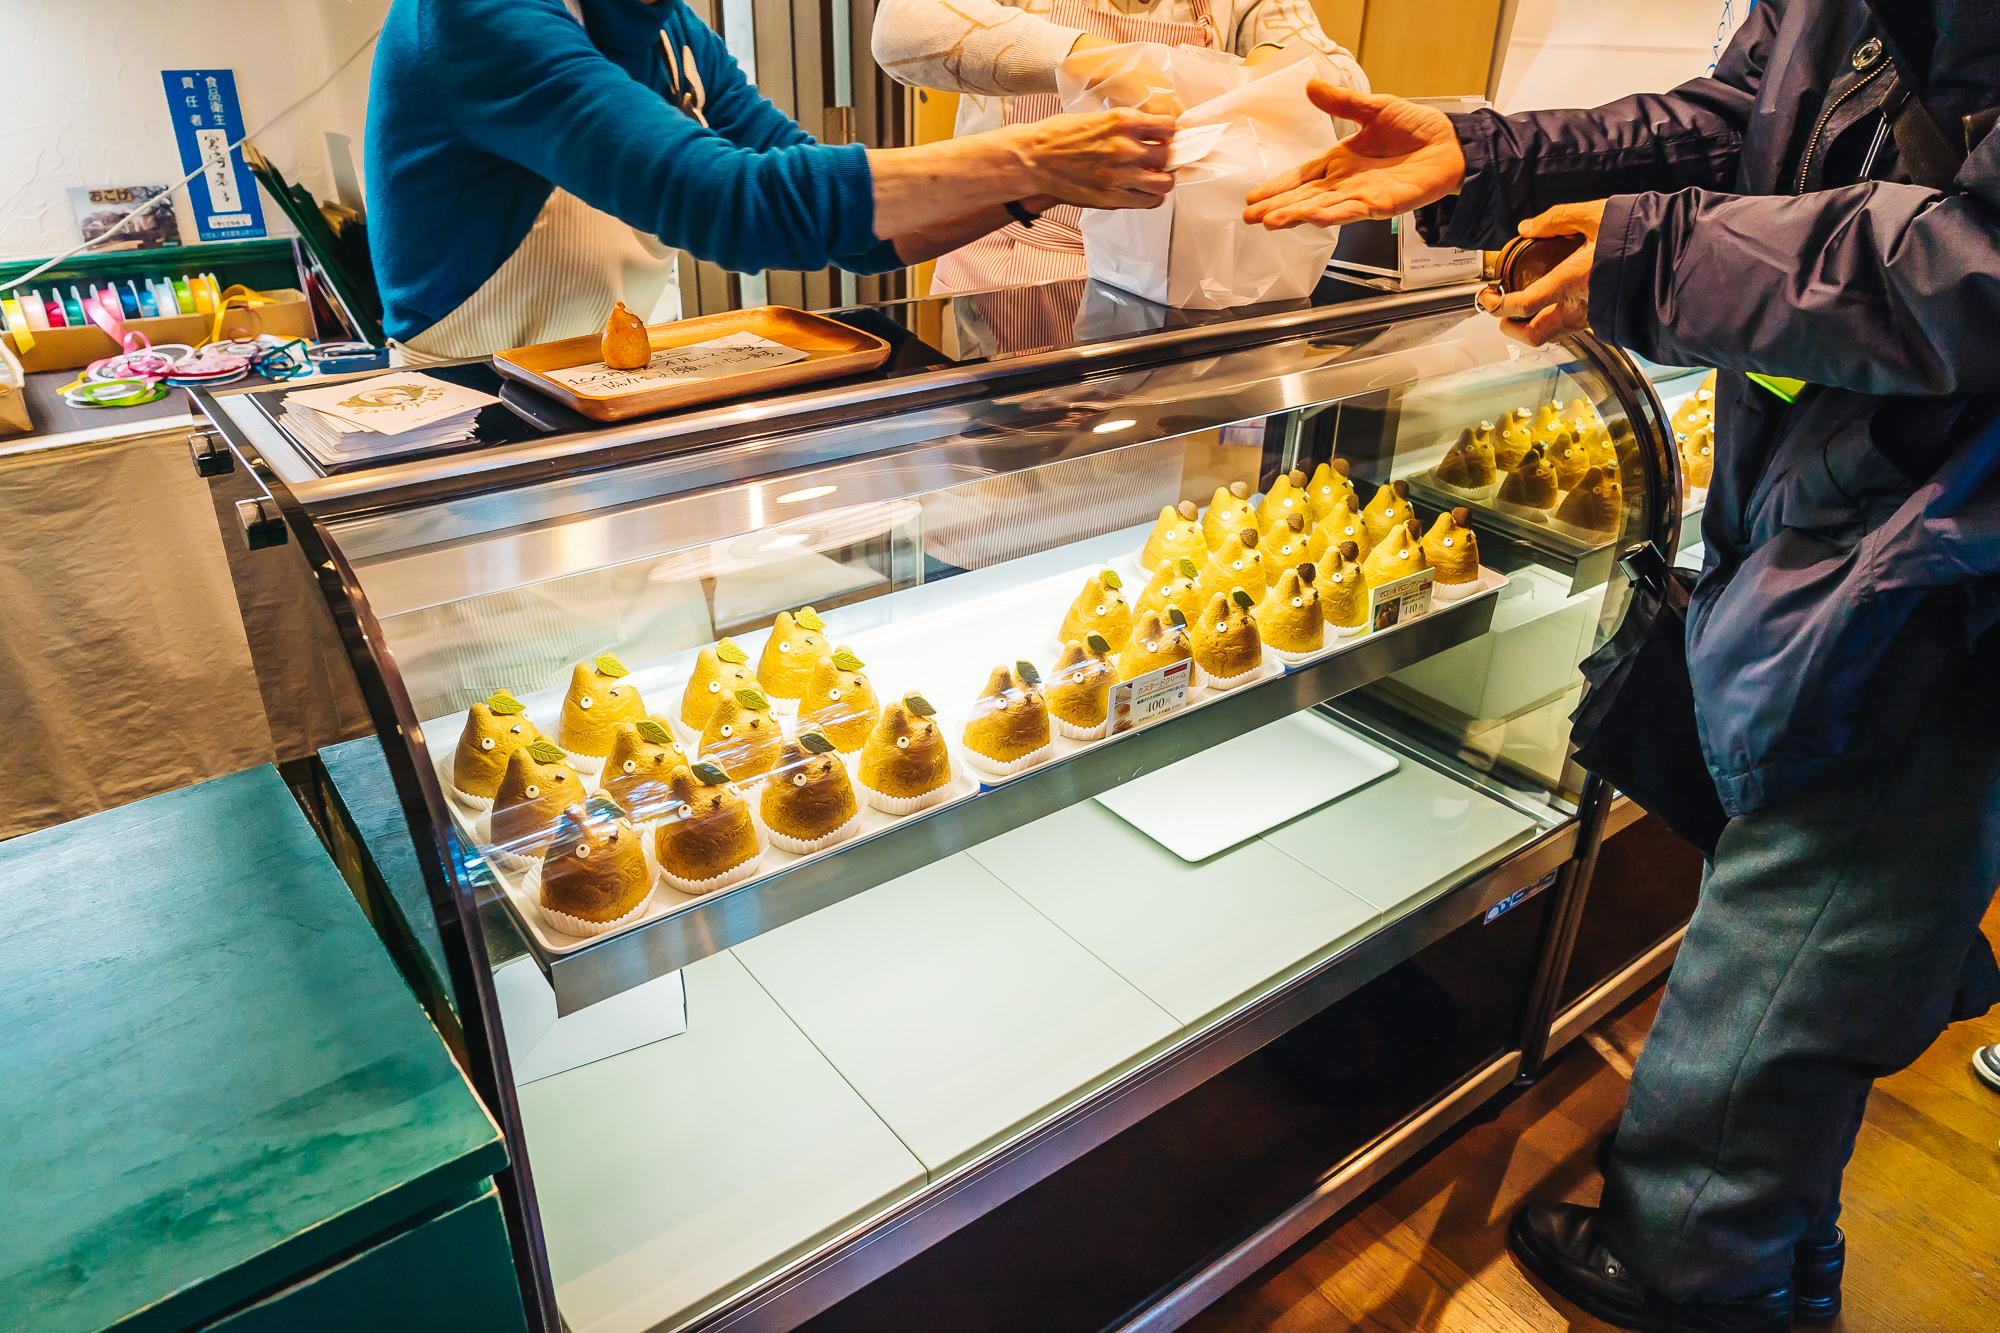 Locals and visitors taking home the cute Totoro cream puffs